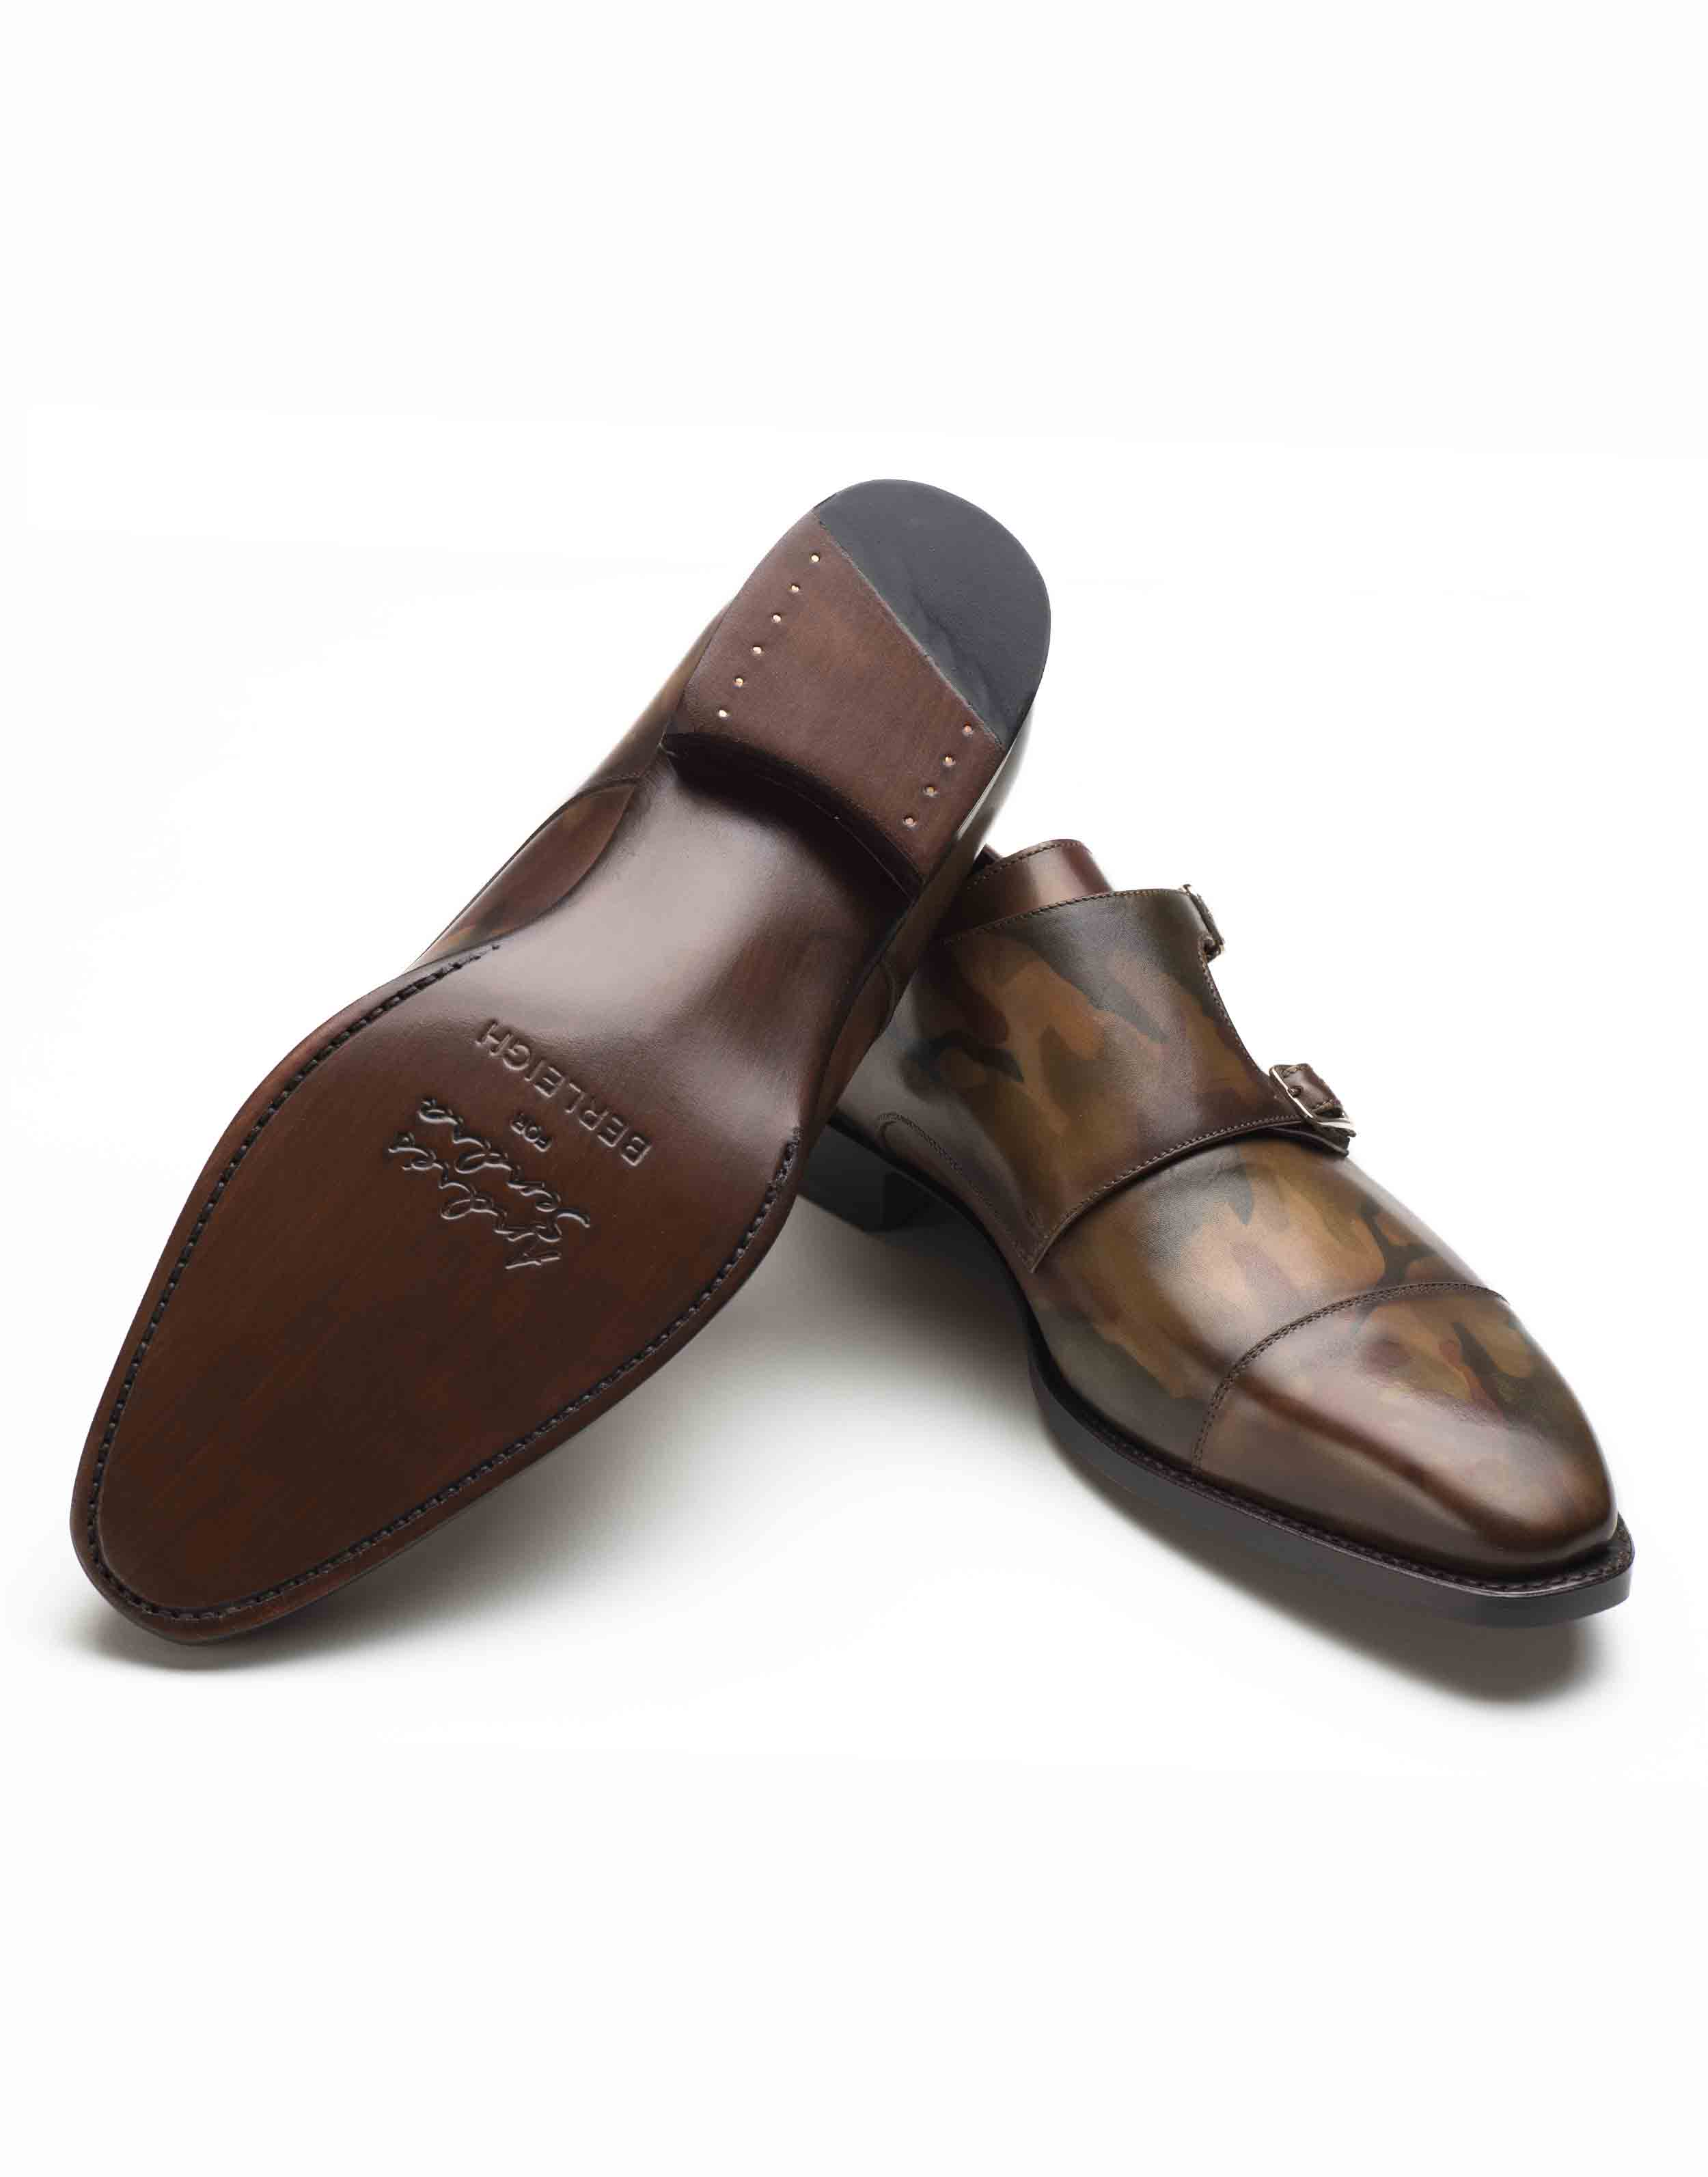 DOUBLE MONK STRAP SHOE3